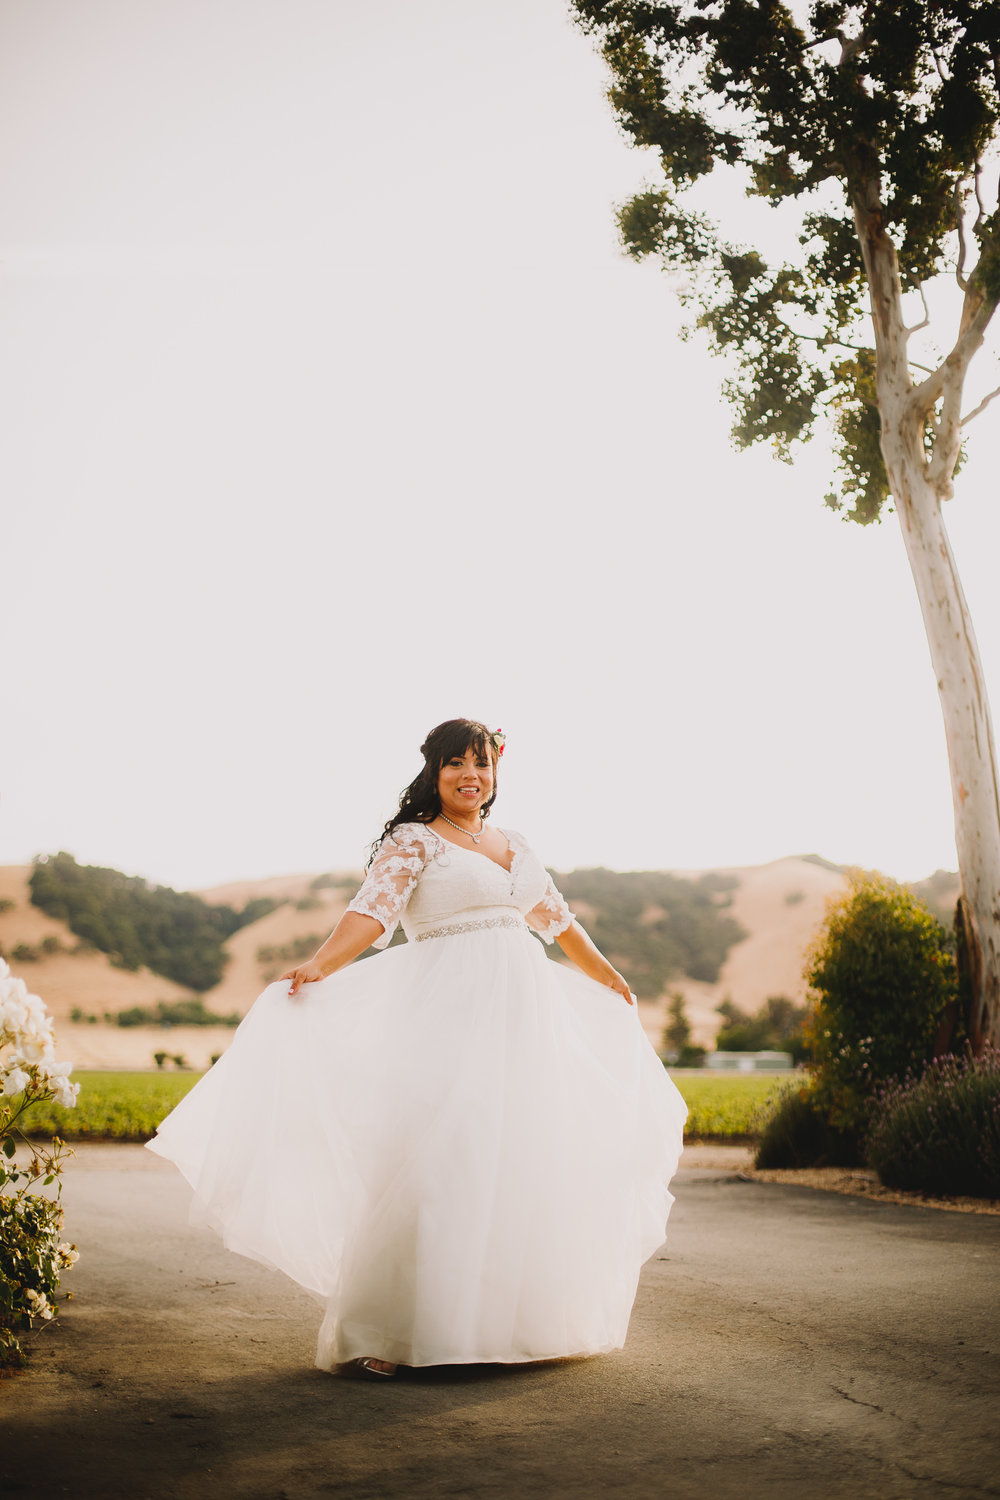 Archer Inspired Photography Fitz Place San Martin Wedding Lifestyle Documentary Affordable Photographer South Bay-597.jpg